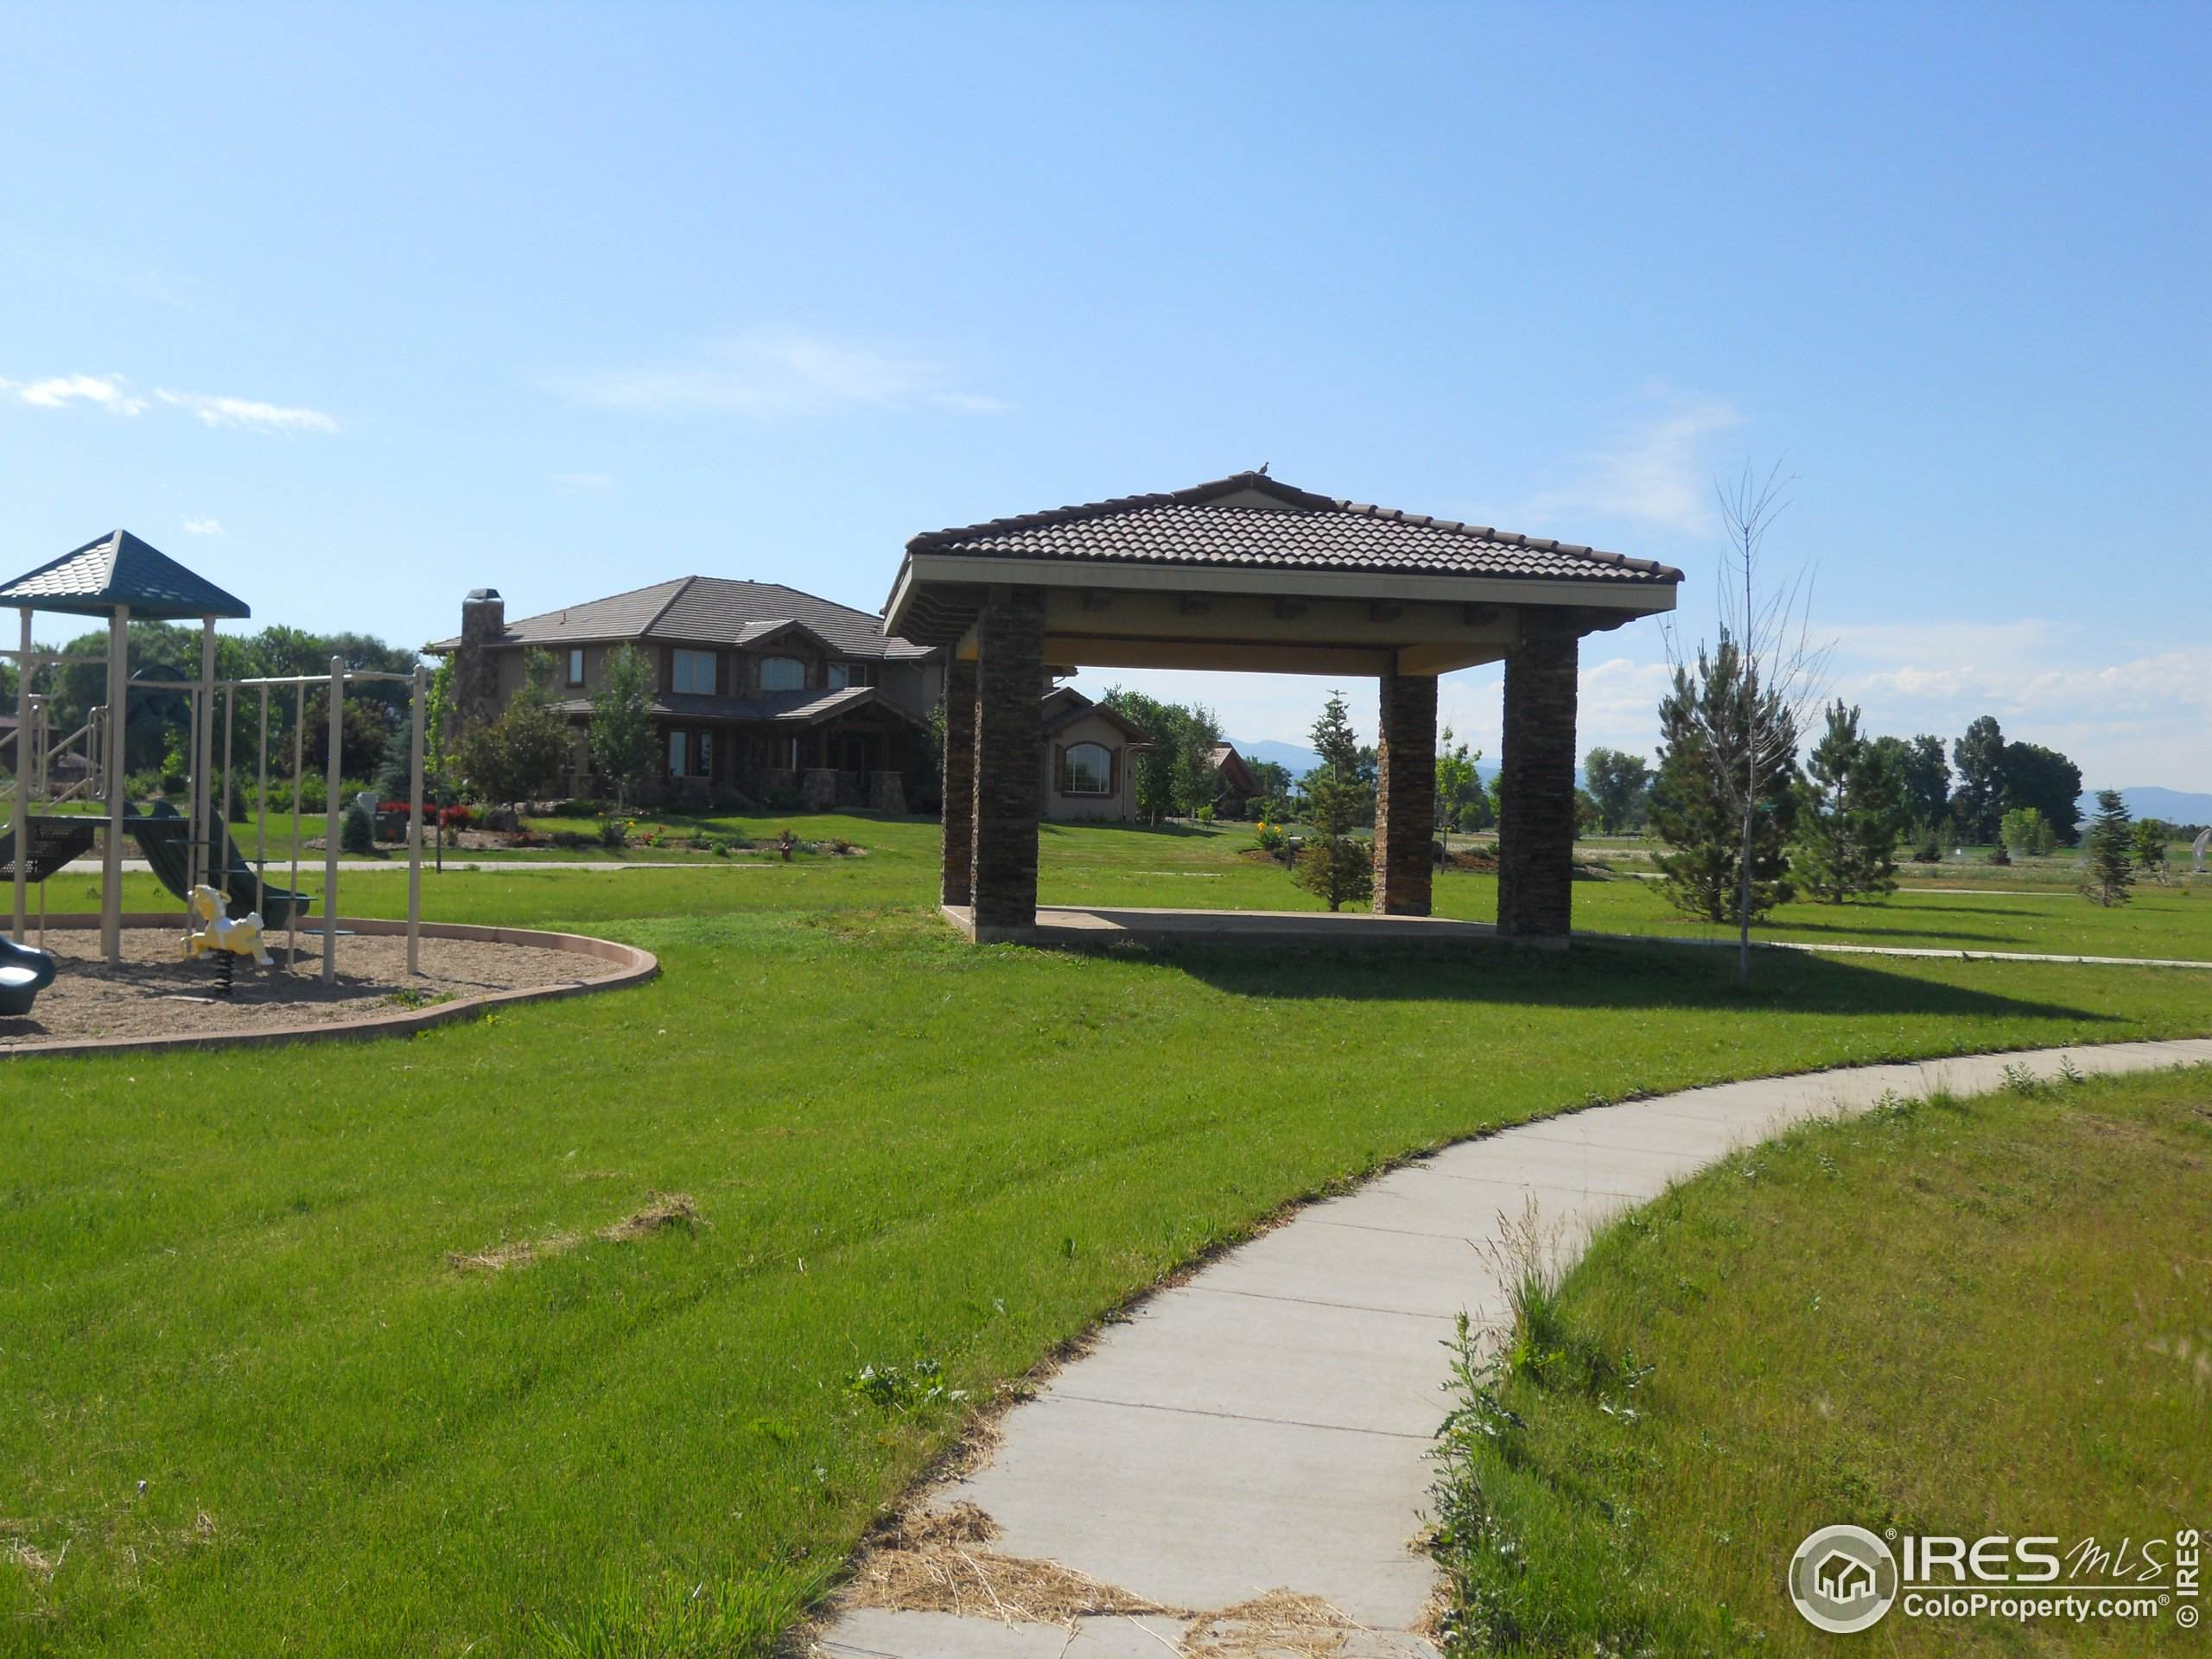 1305 Carlene Dr, Loveland, CO 80537 (#925392) :: James Crocker Team